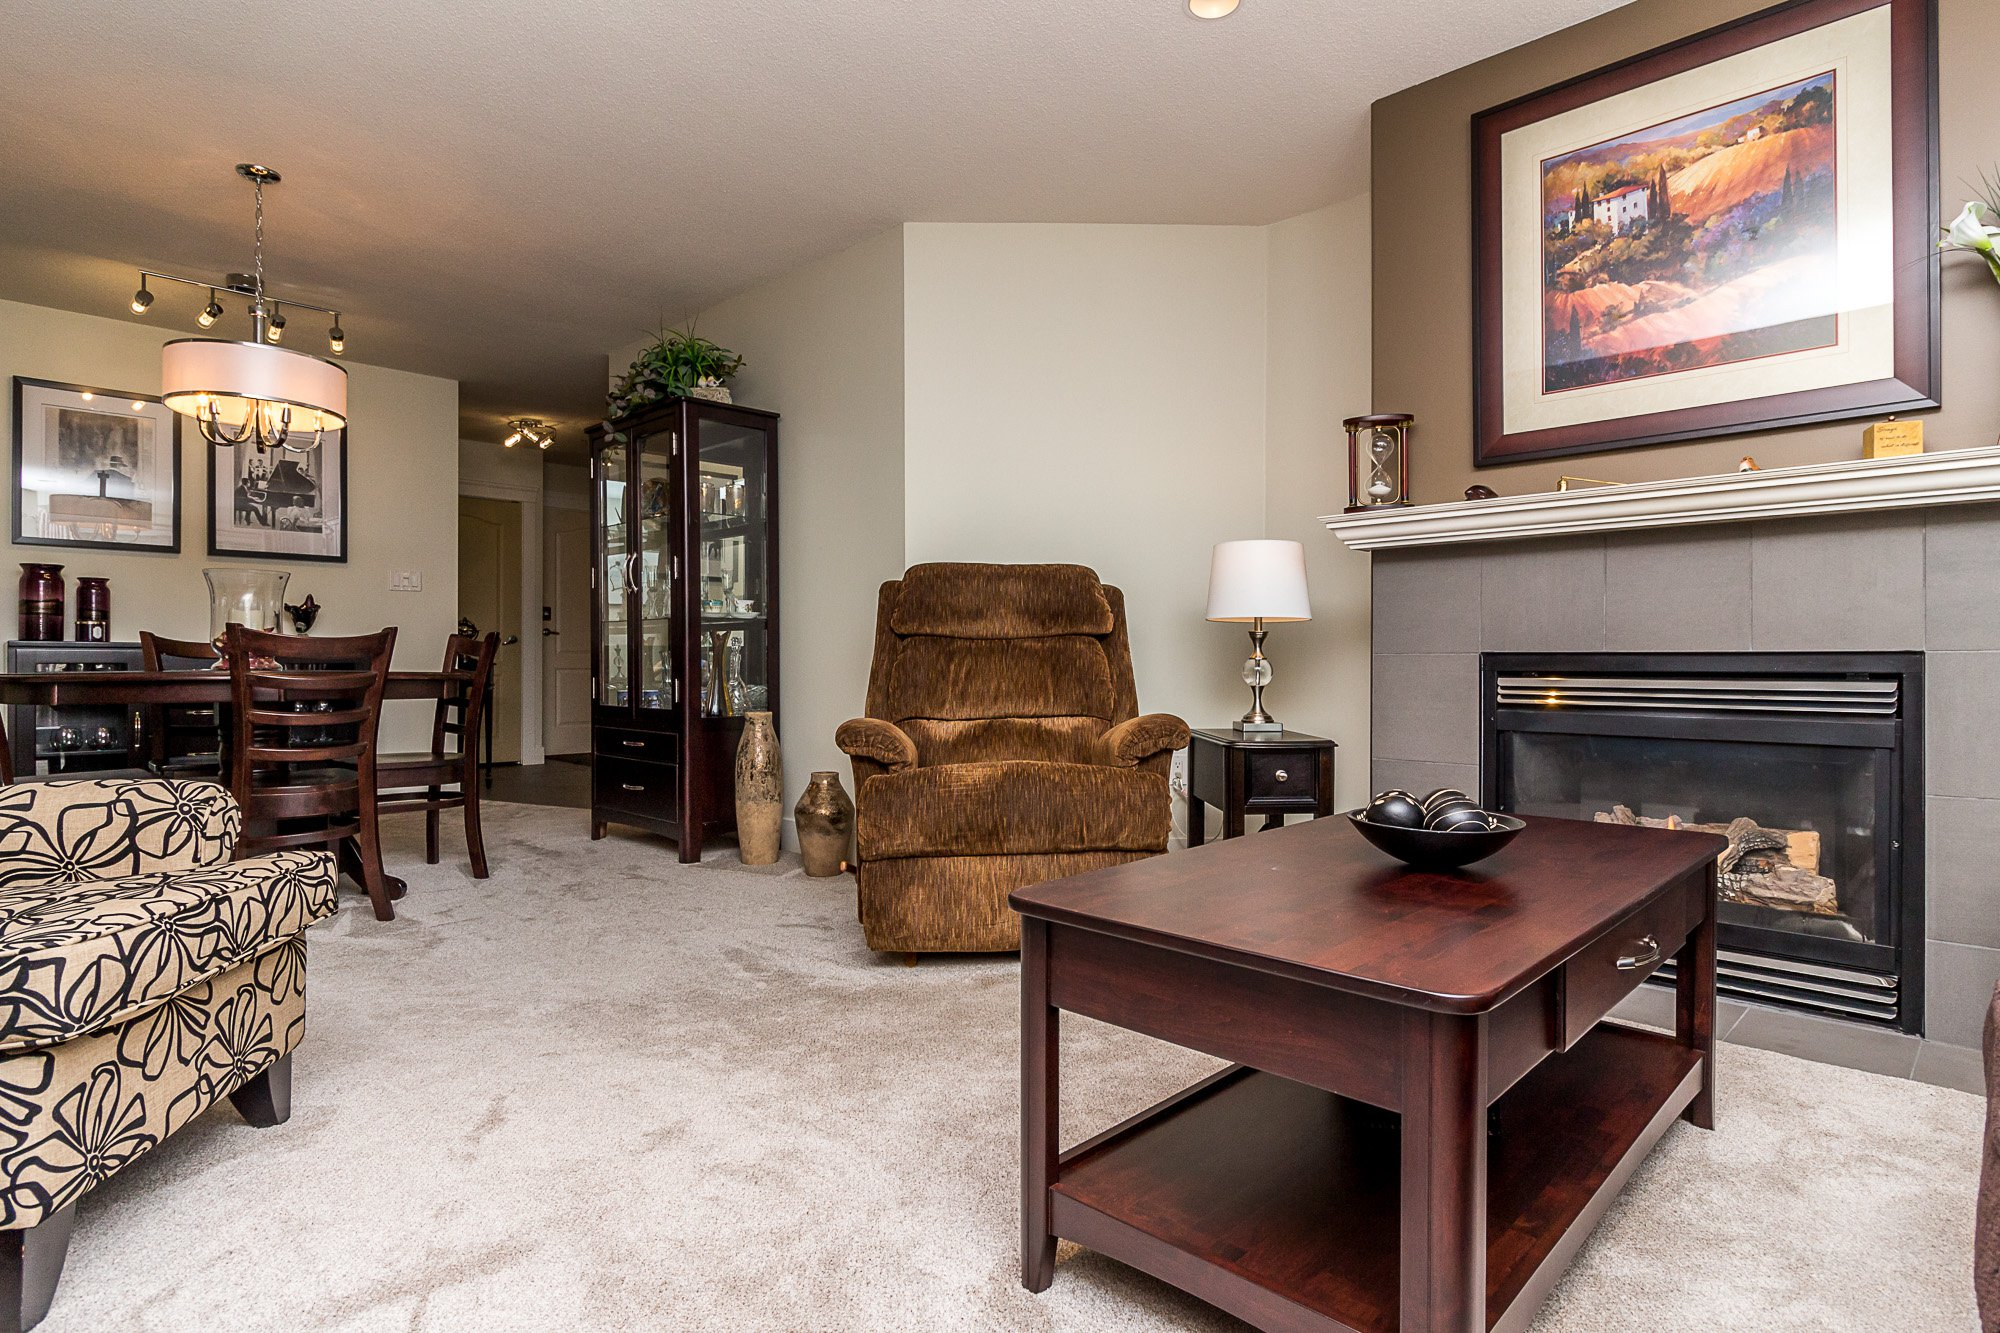 """Photo 3: Photos: 412 22022 49 Avenue in Langley: Murrayville Condo for sale in """"Murray Green"""" : MLS®# R2266359"""